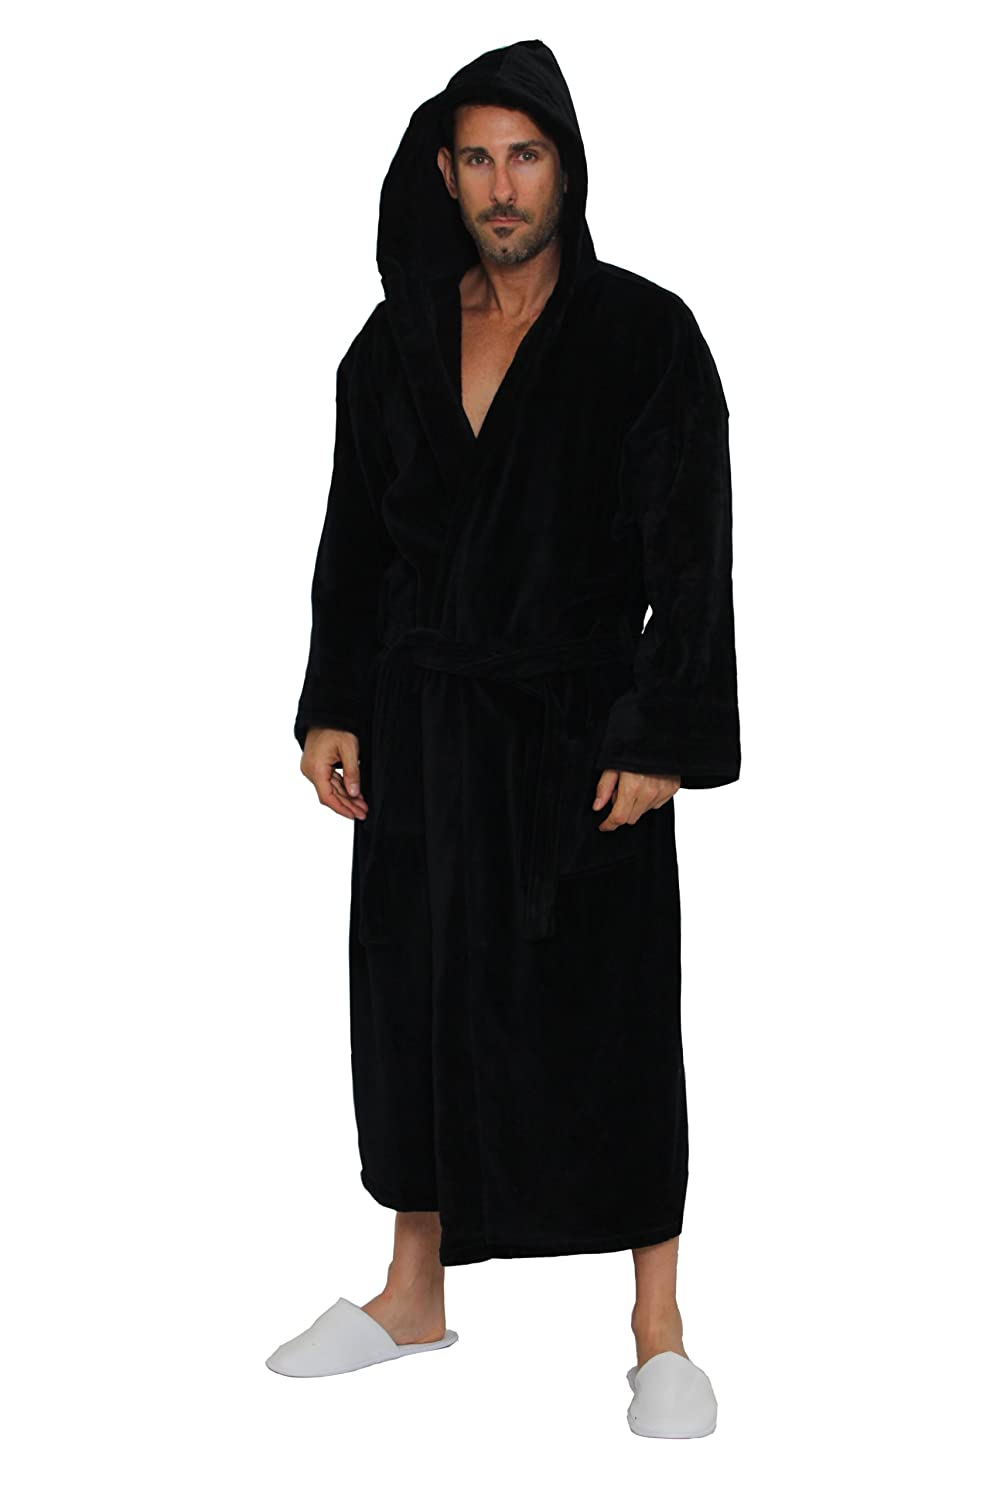 dcc200974d TowelRobes Terry Velour Hooded 100% Cotton Absorbent Robe Women s Men s  Bathrobe at Amazon Men s Clothing store